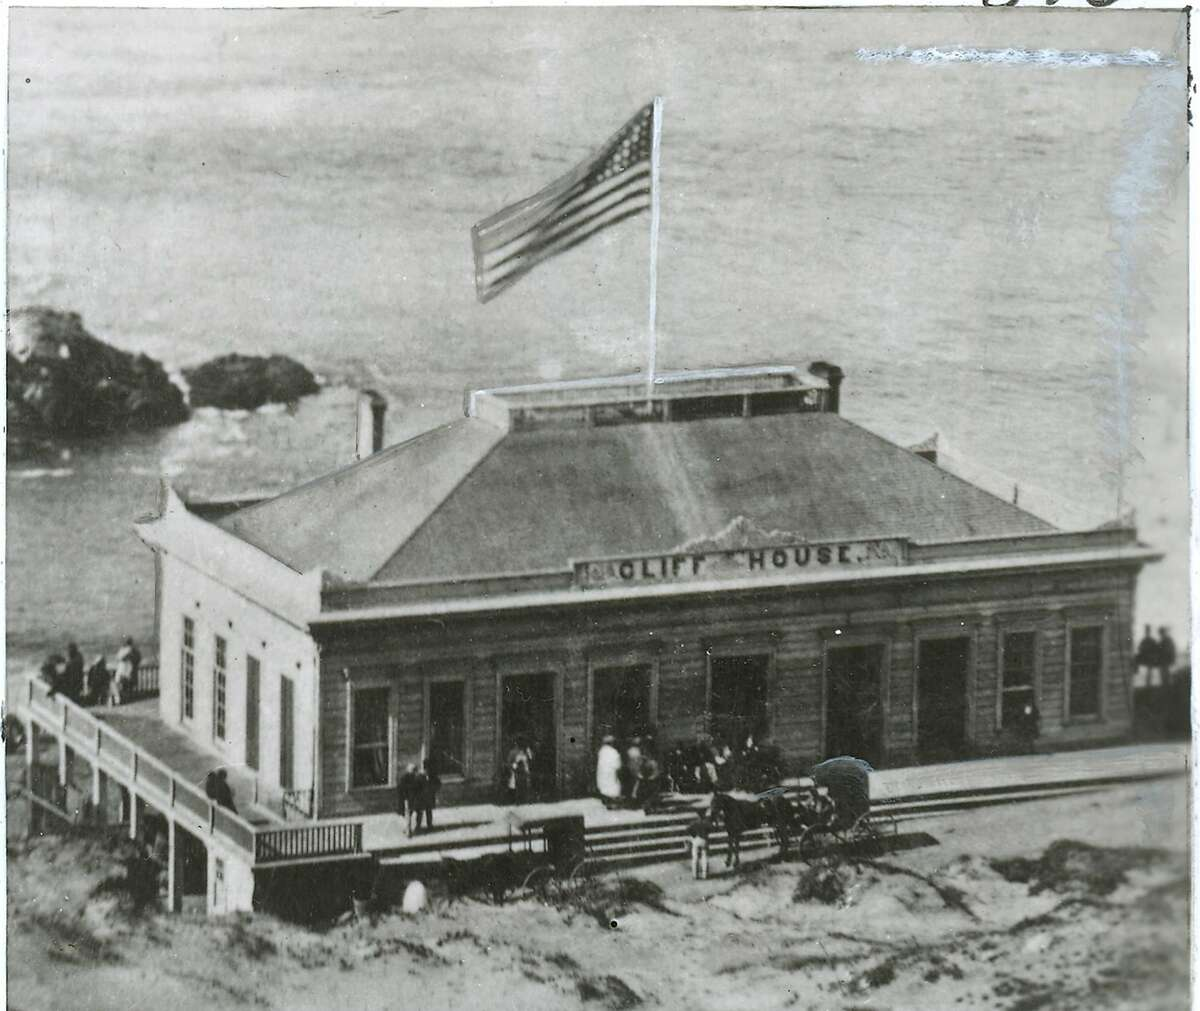 The first Cliff House was a modest structure that opened in 1863. On Christmas Day, 1894, a fire destroyed the building.